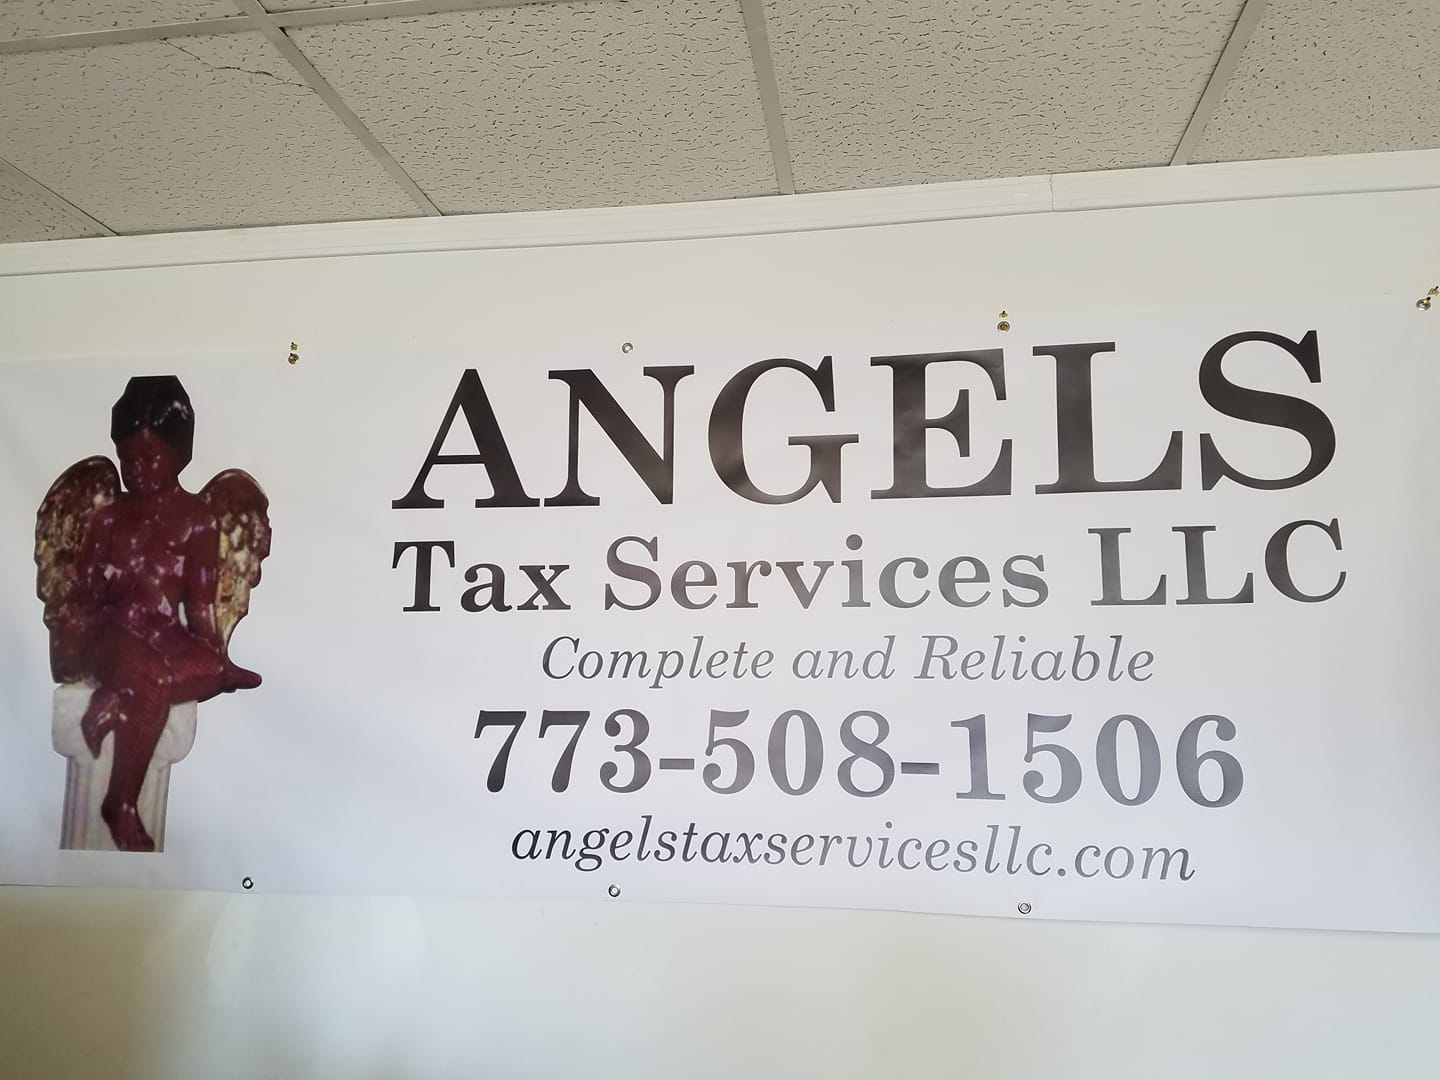 Angels Tax Services LLC